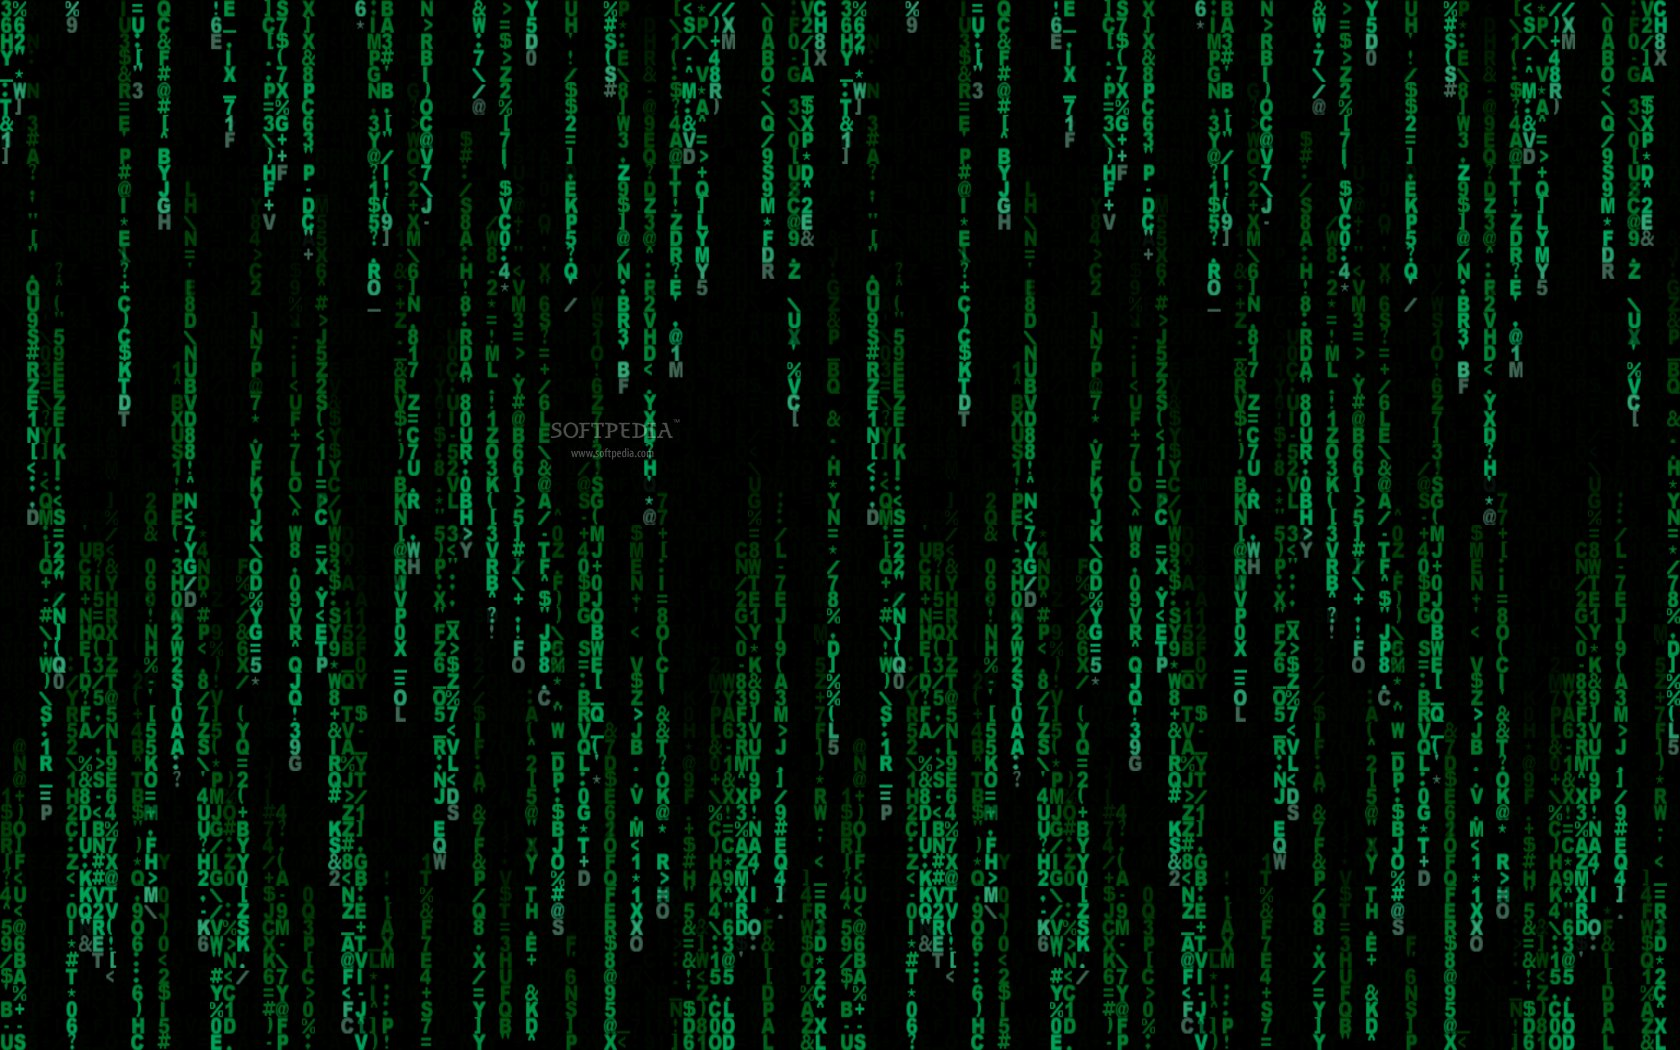 [50+] Moving Matrix Wallpaper Windows 10 On WallpaperSafari